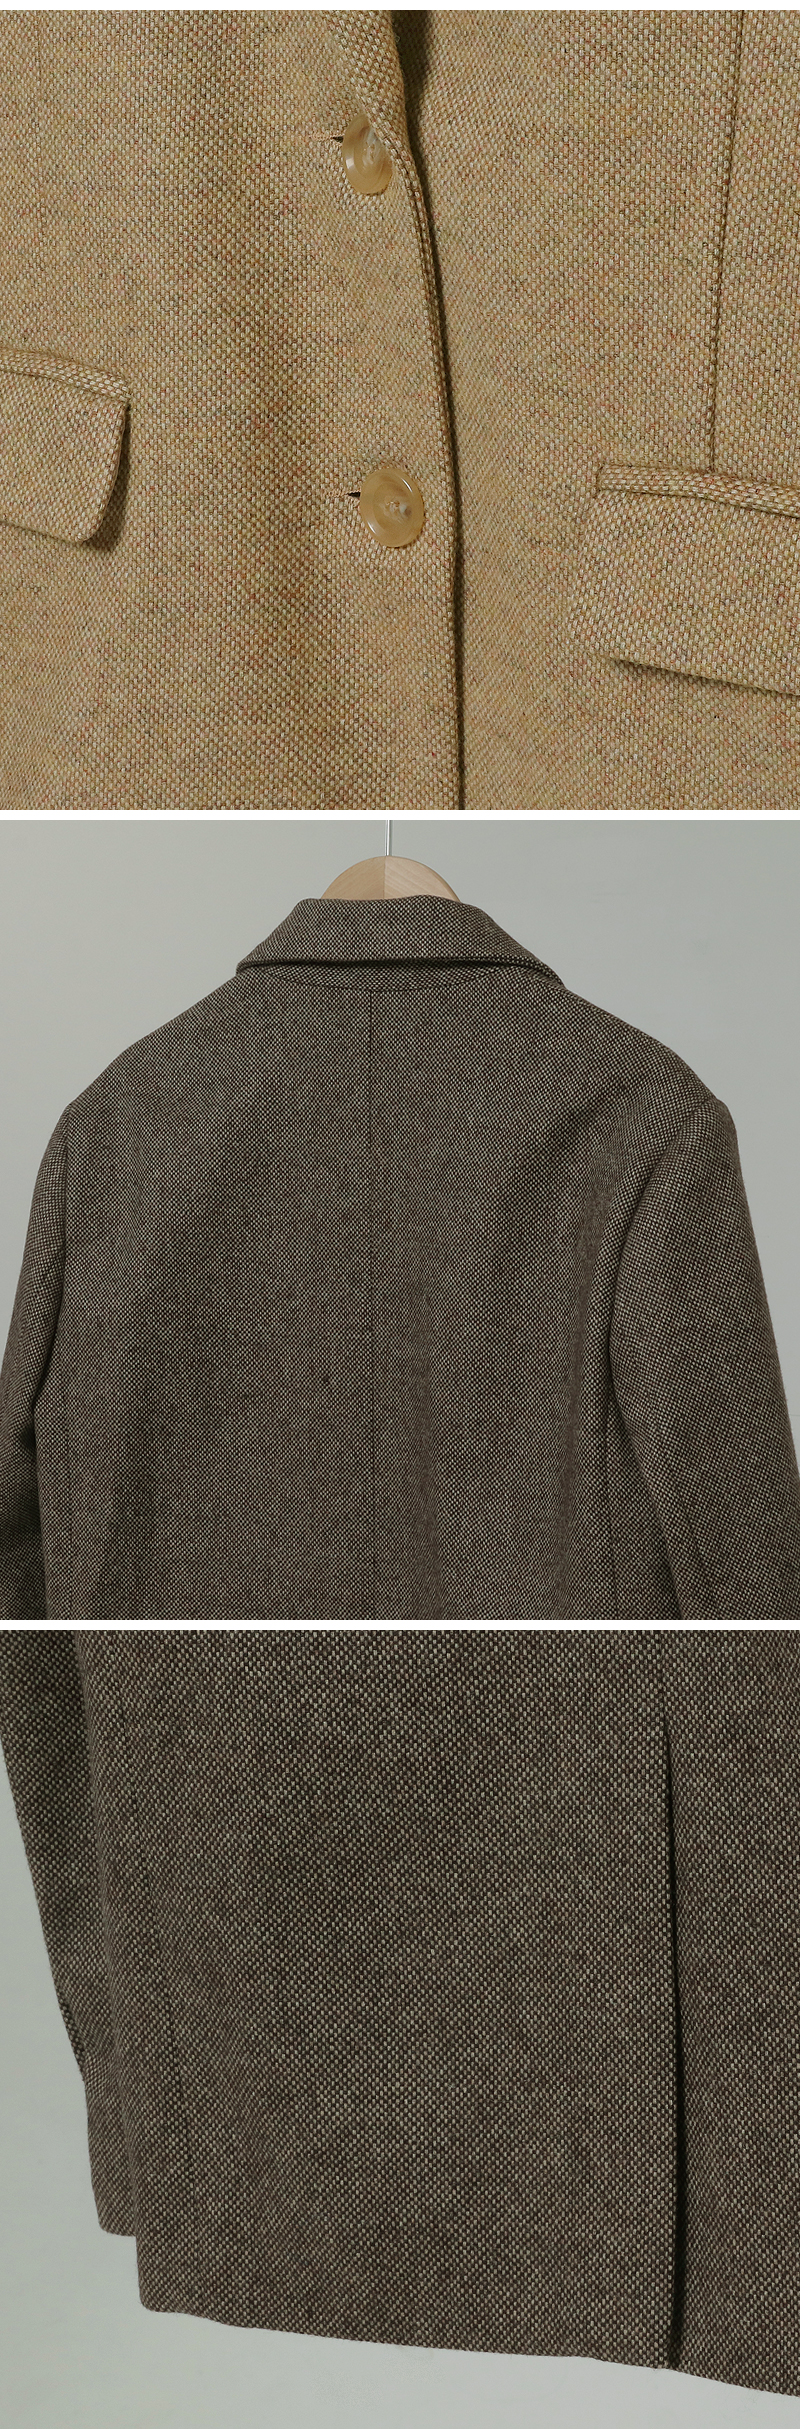 Ordinary Single Wool Jacket